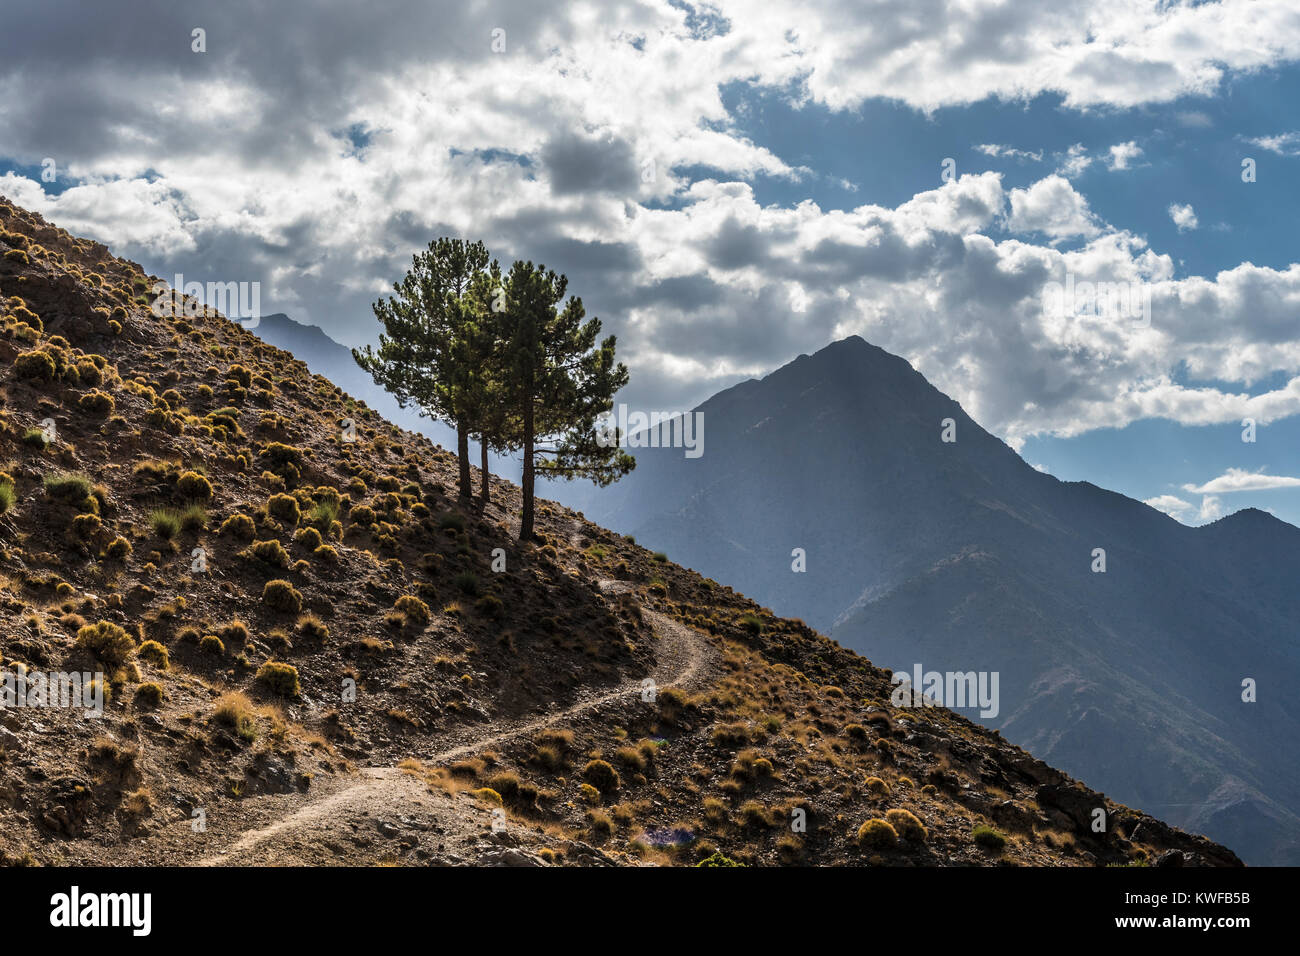 Mountain path with perfectly located lonley tree stand , Atlas Mountains by Imlil, Morocco. Stock Photo